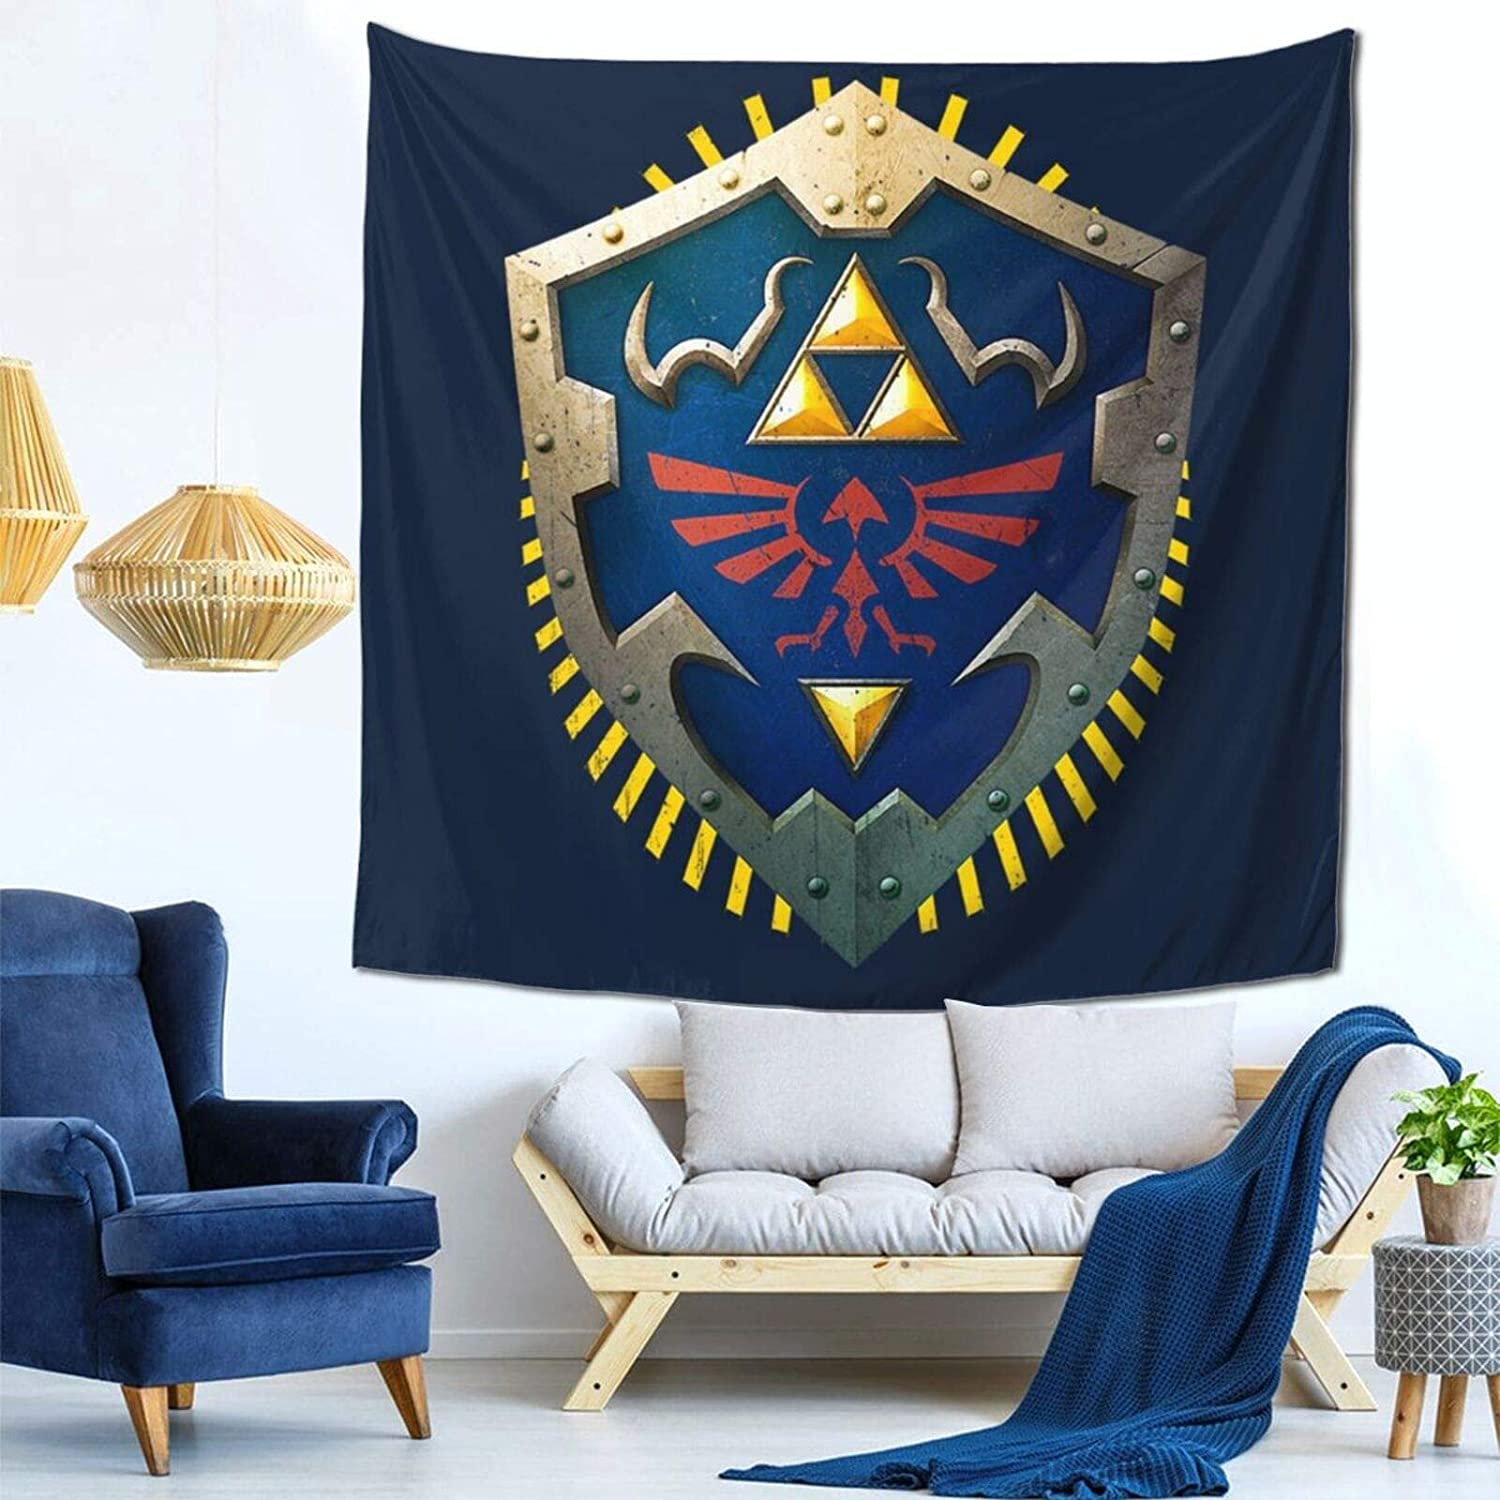 1033 Hylian Shield Legend of Zelda Triforce Wall Hanging Tapestry for Living Room and Bedroom Spreads Good Vibes 59×59 Inches